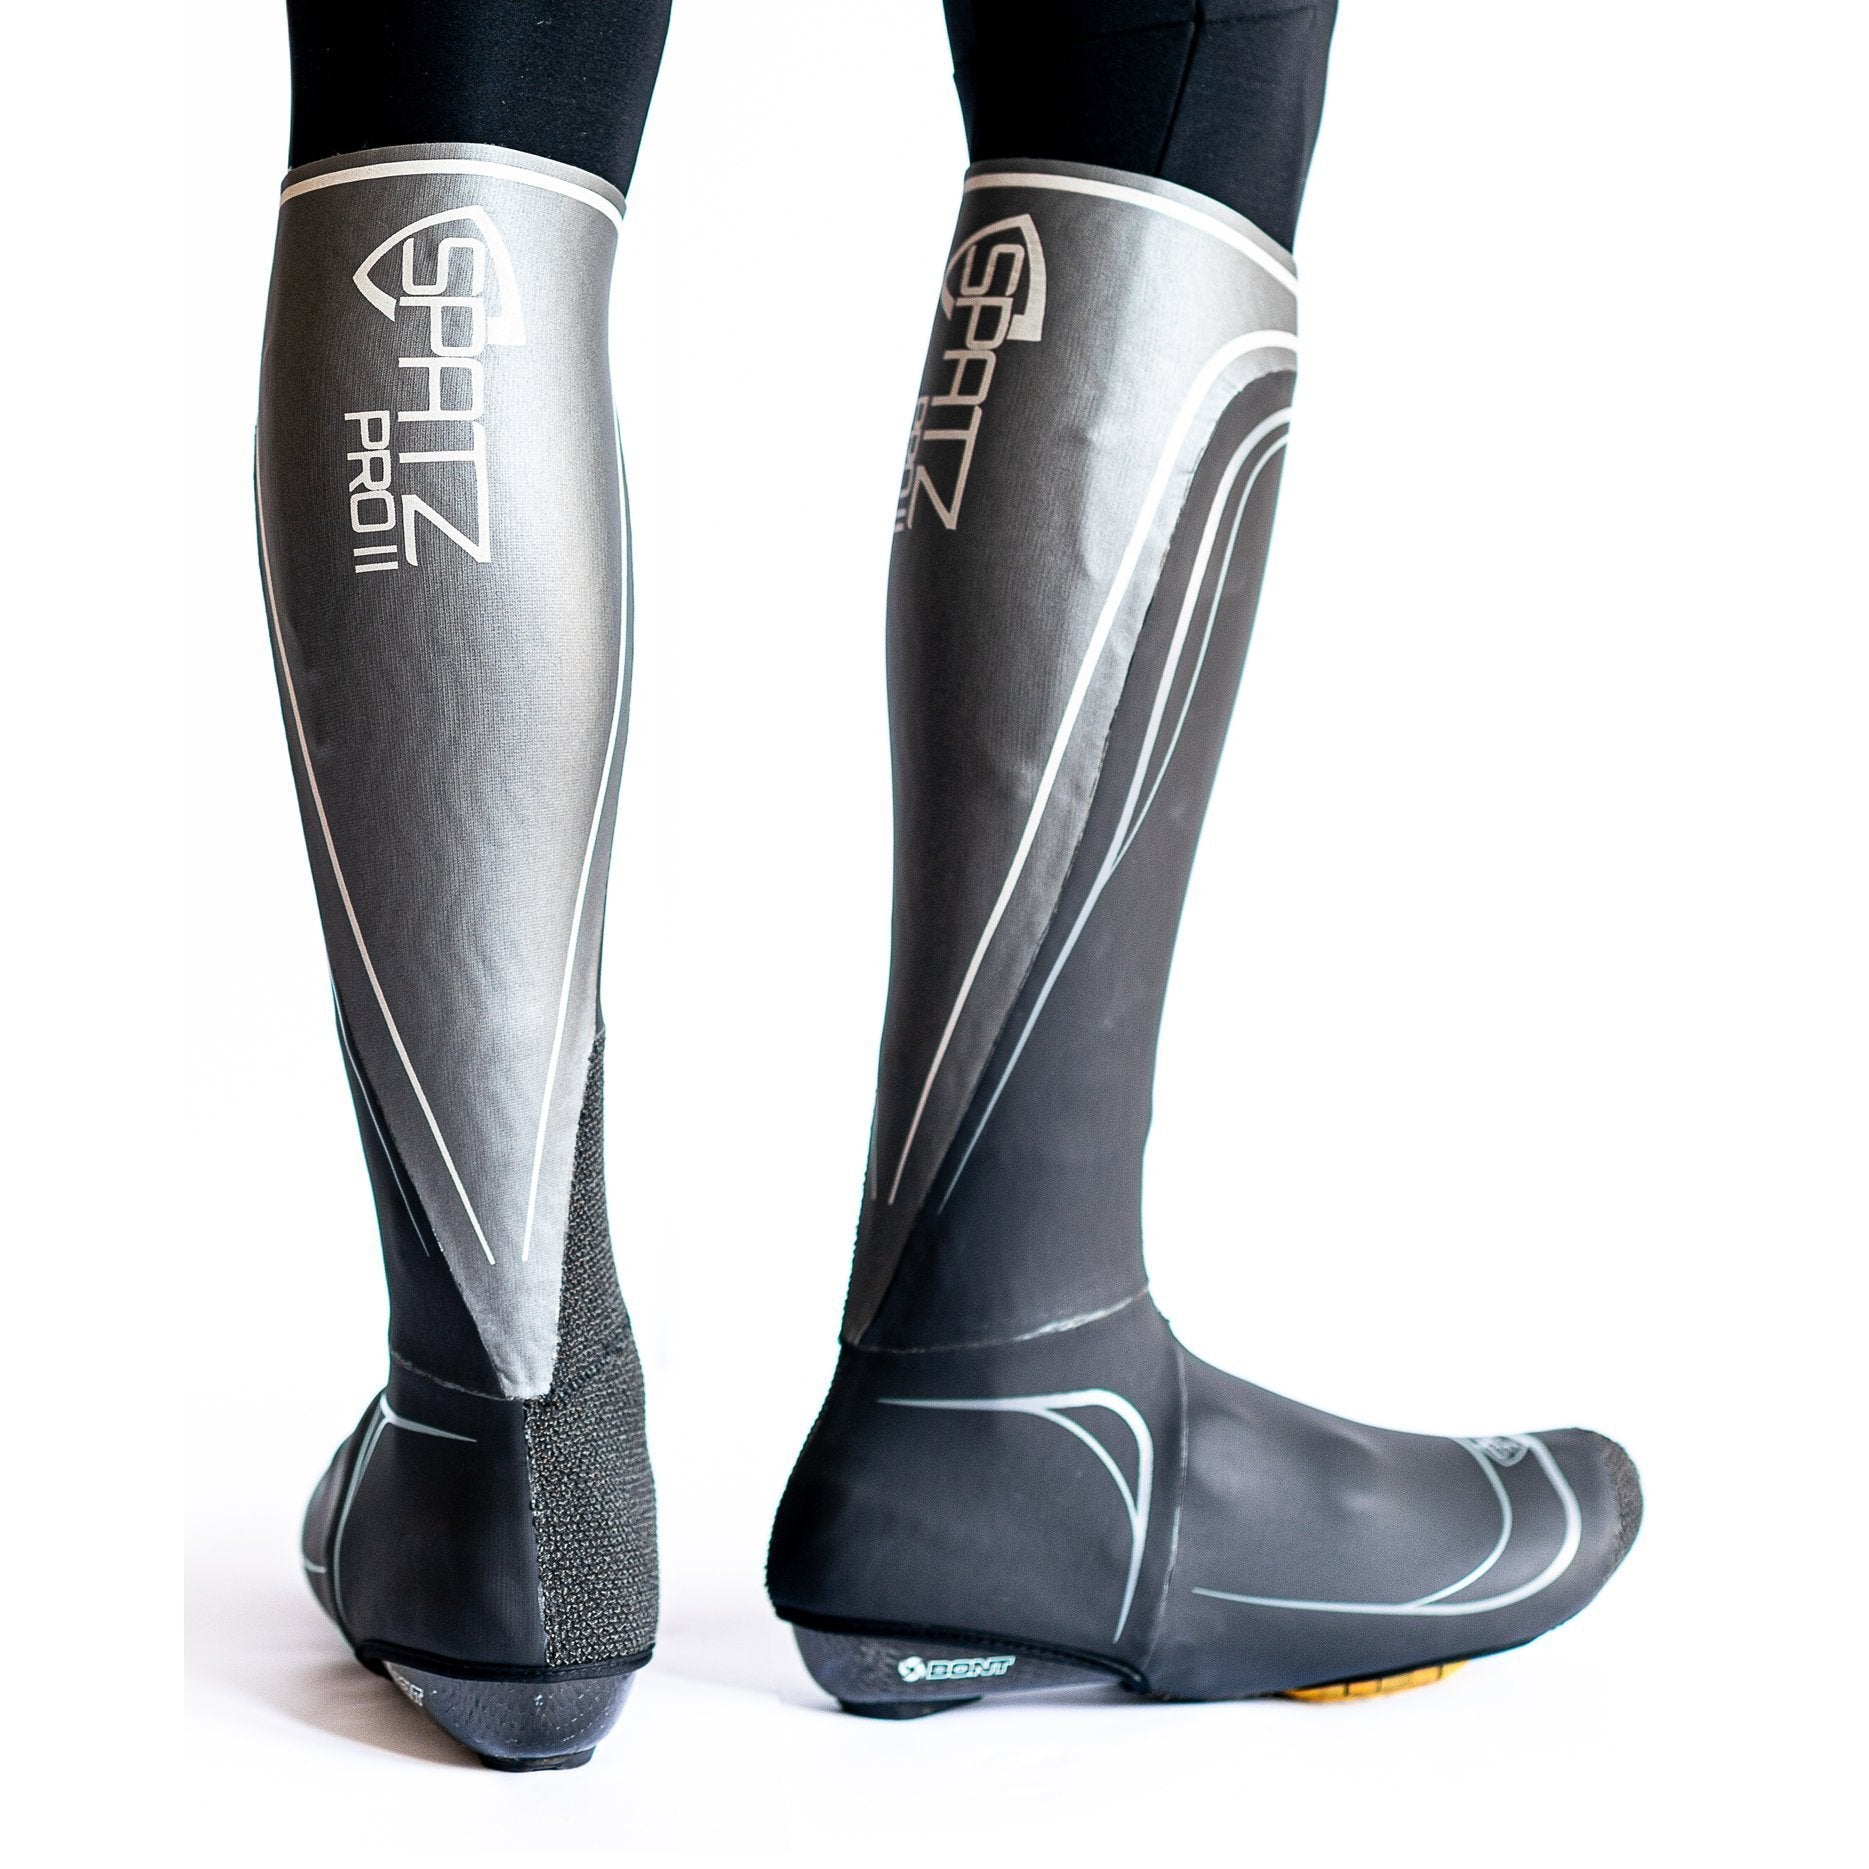 Spatzwear Cycle Clothing > Overshoes SPATZ 'Pro 2' Overshoes